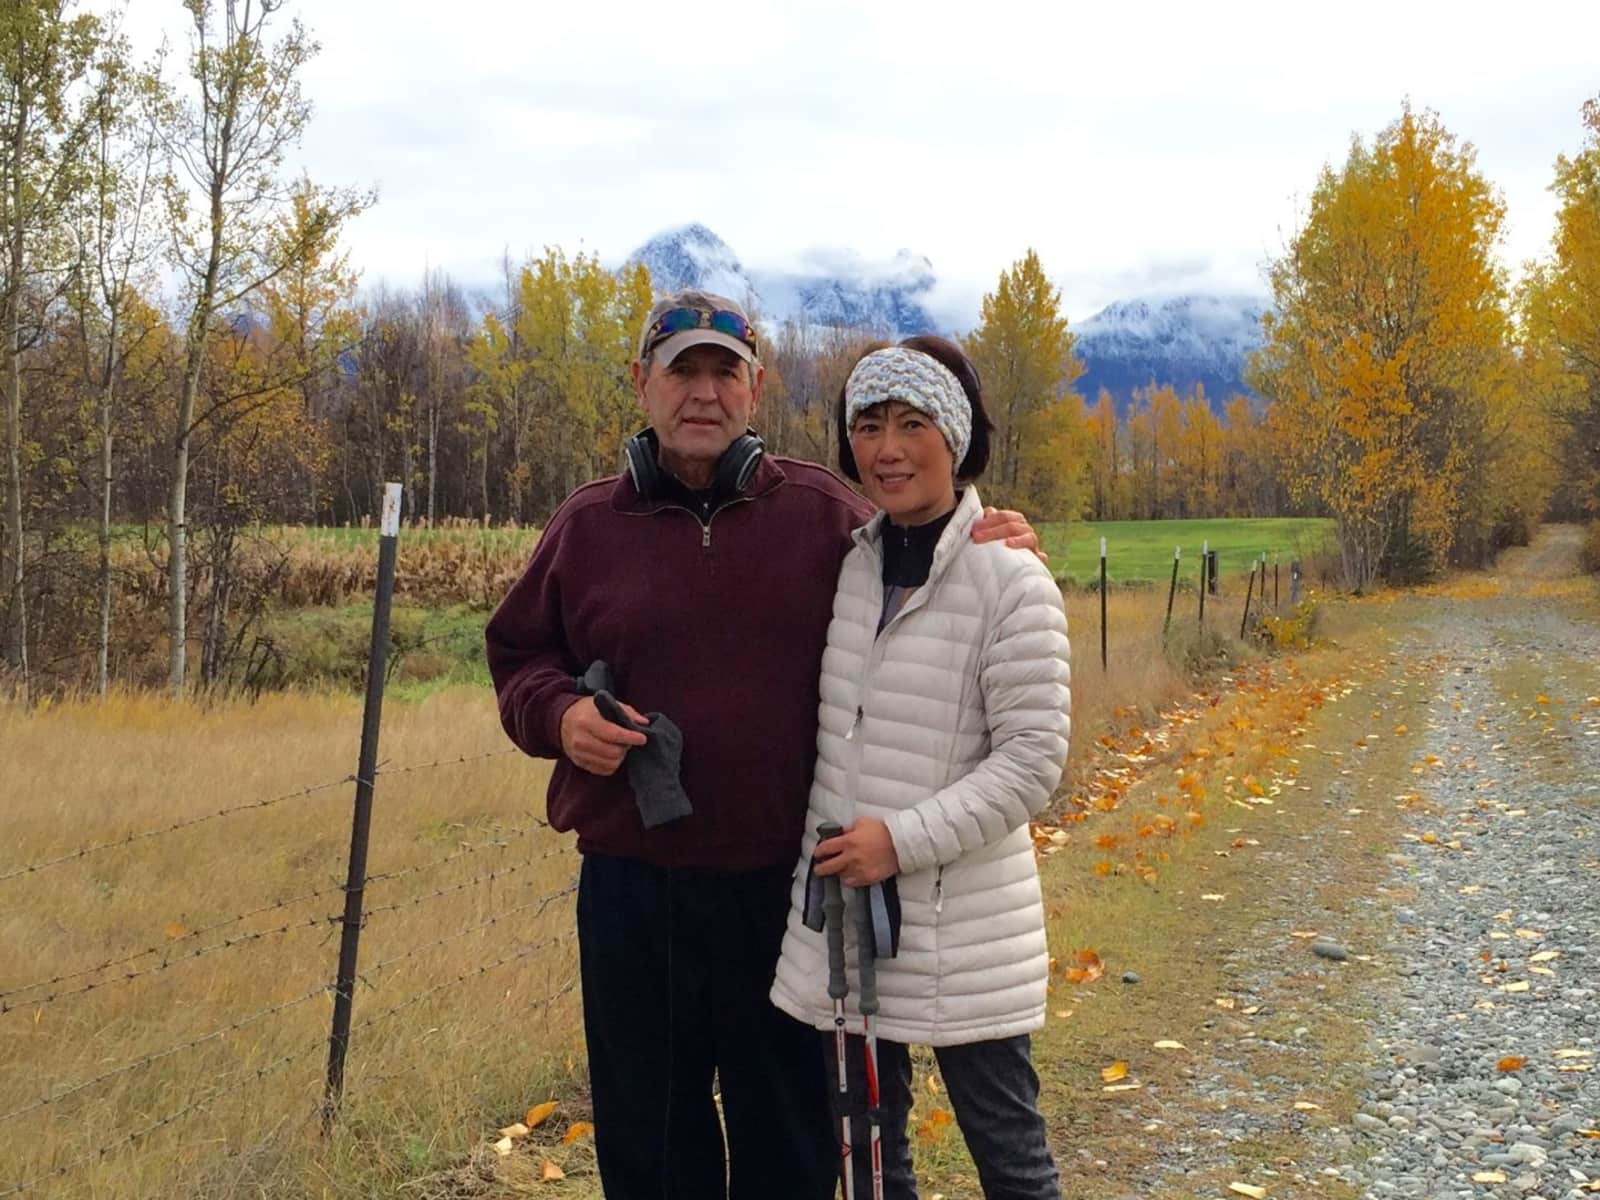 Peter & maria & Maria from Wasilla, Alaska, United States